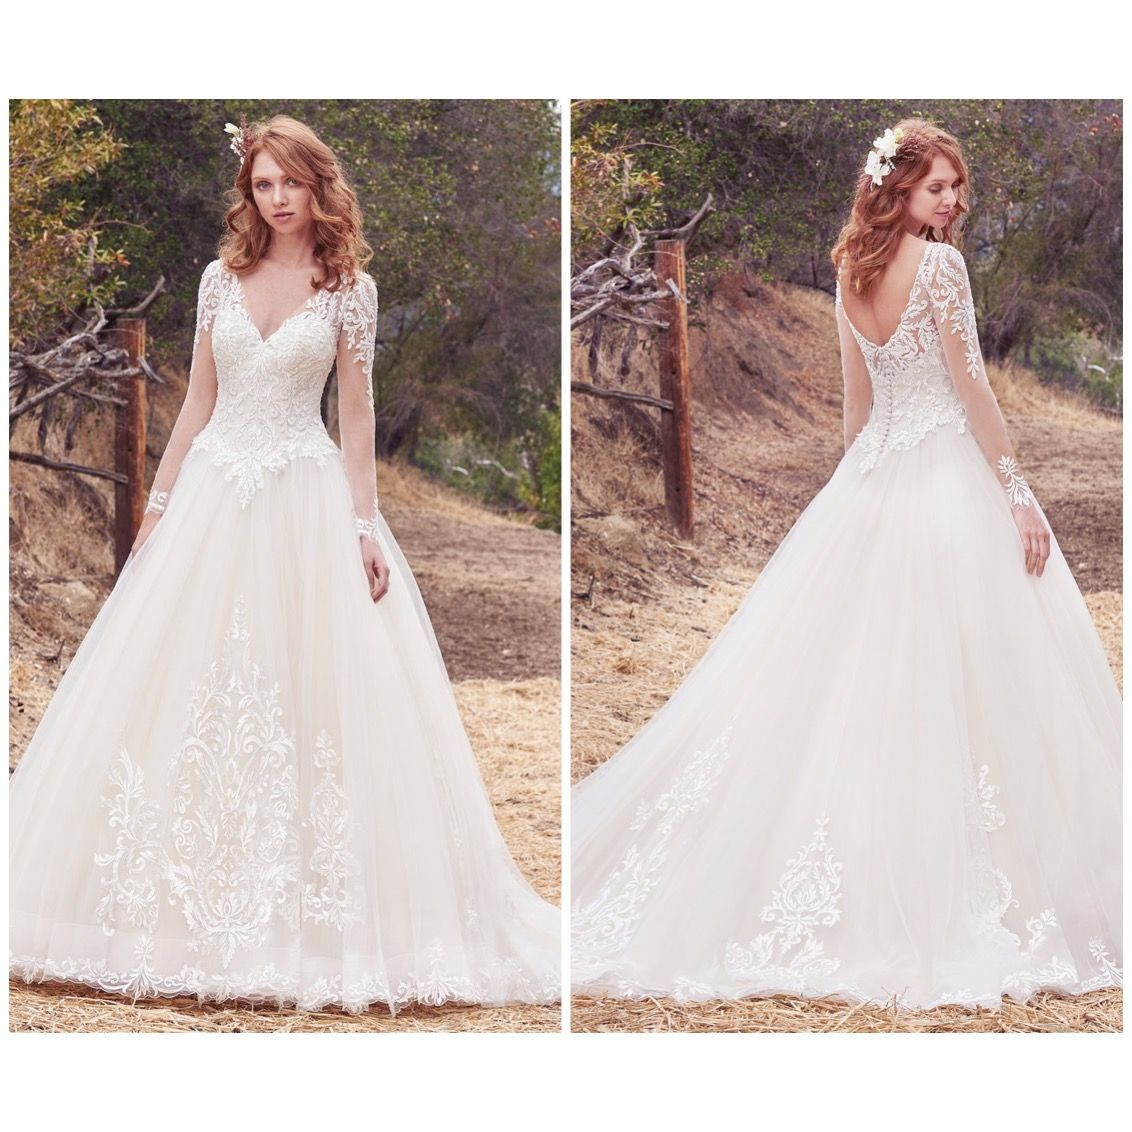 Plus size wedding dress designers  Maggie Sottero  Size  in store  Plus Size Wedding Gowns All